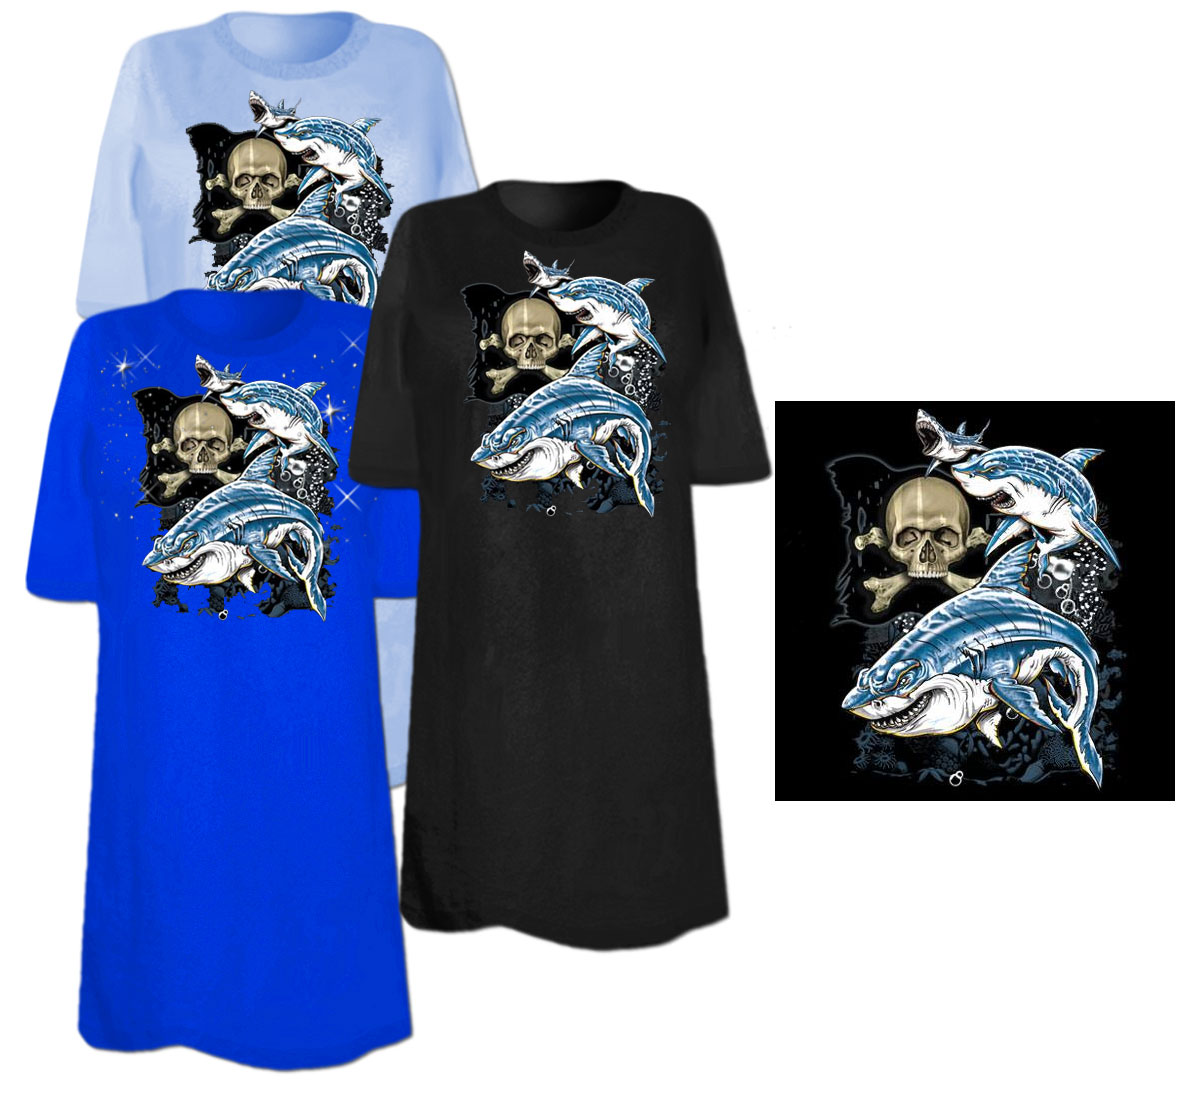 Sale sharks and skull plus size supersize t shirts s m for 3x shirts on sale